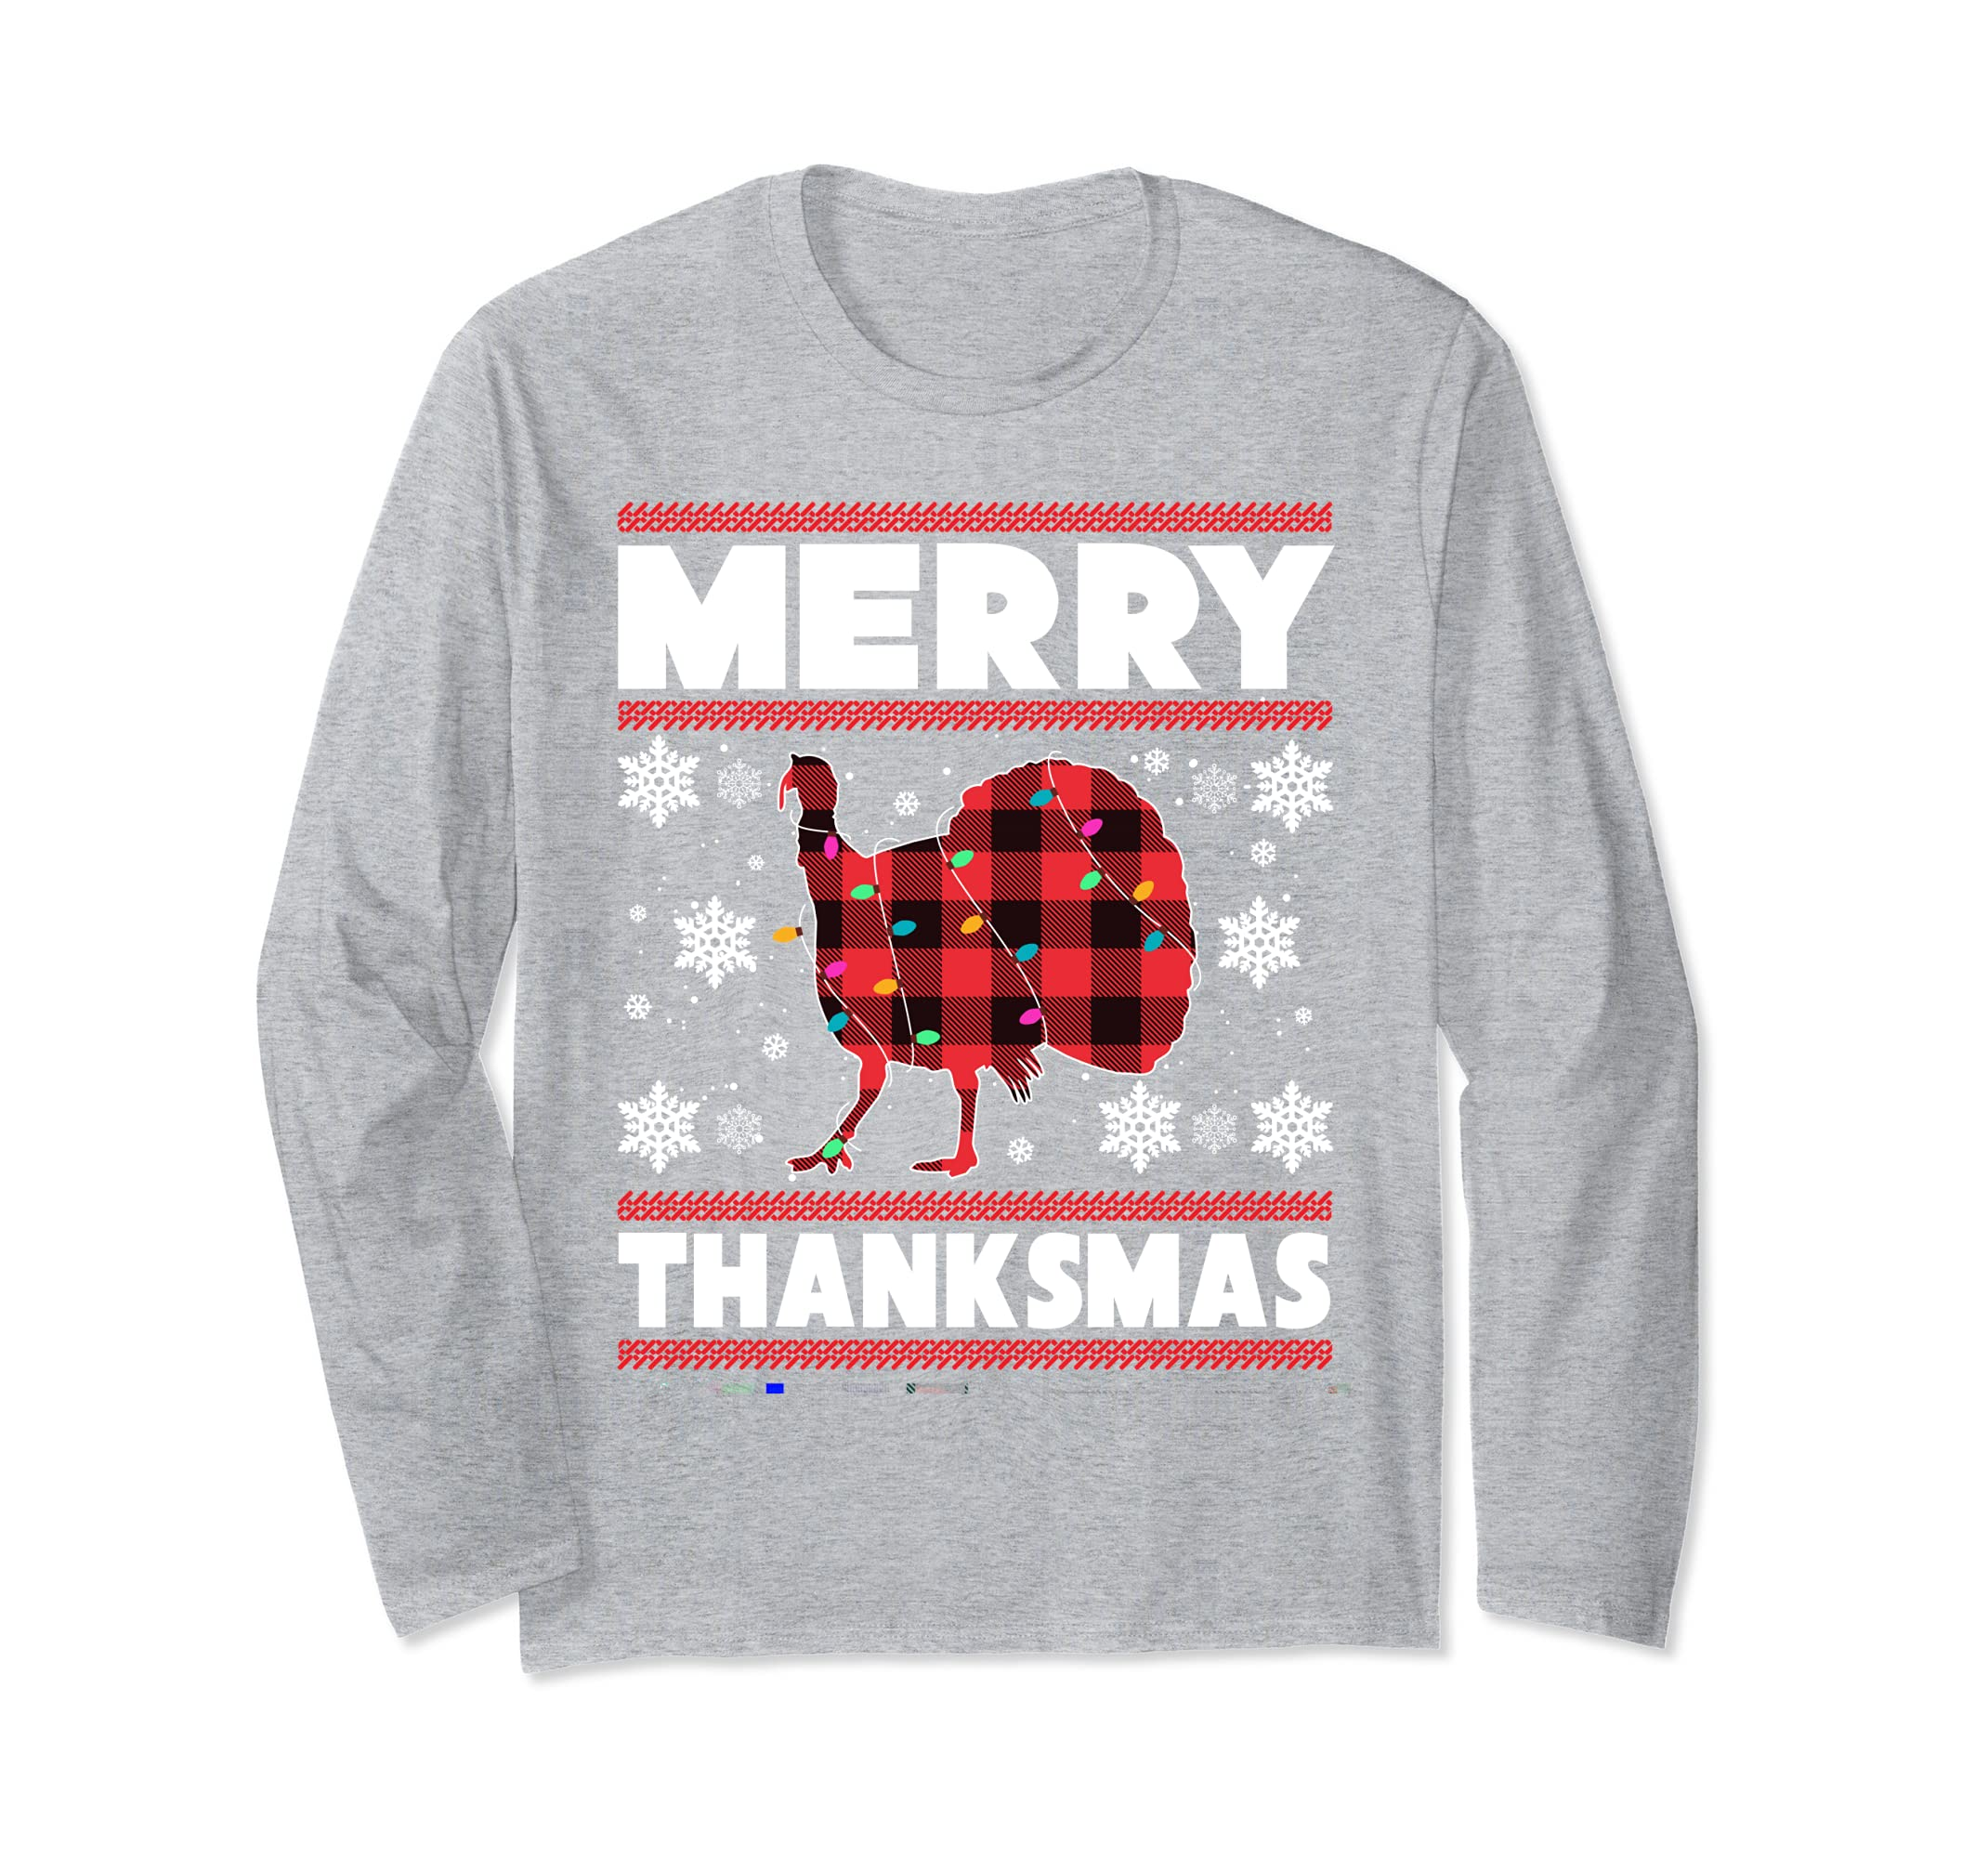 Merry Thanksmas Long Sleeve Thanksgiving Christmas Gifts Cool Design ...